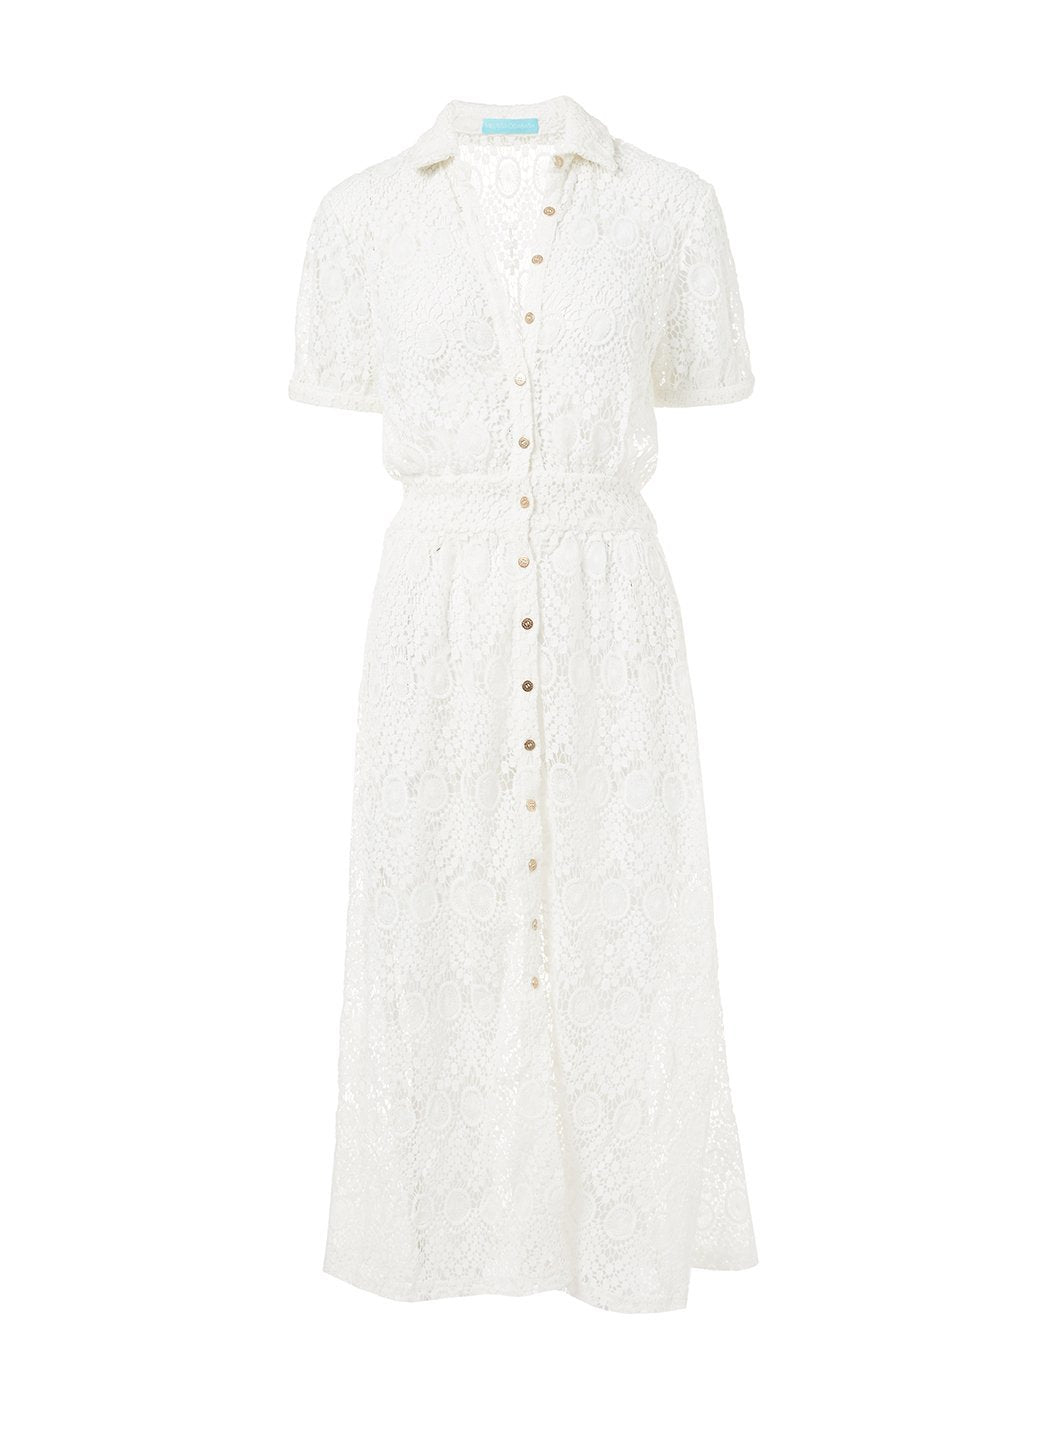 april white lace midi button down shirt dress 2019